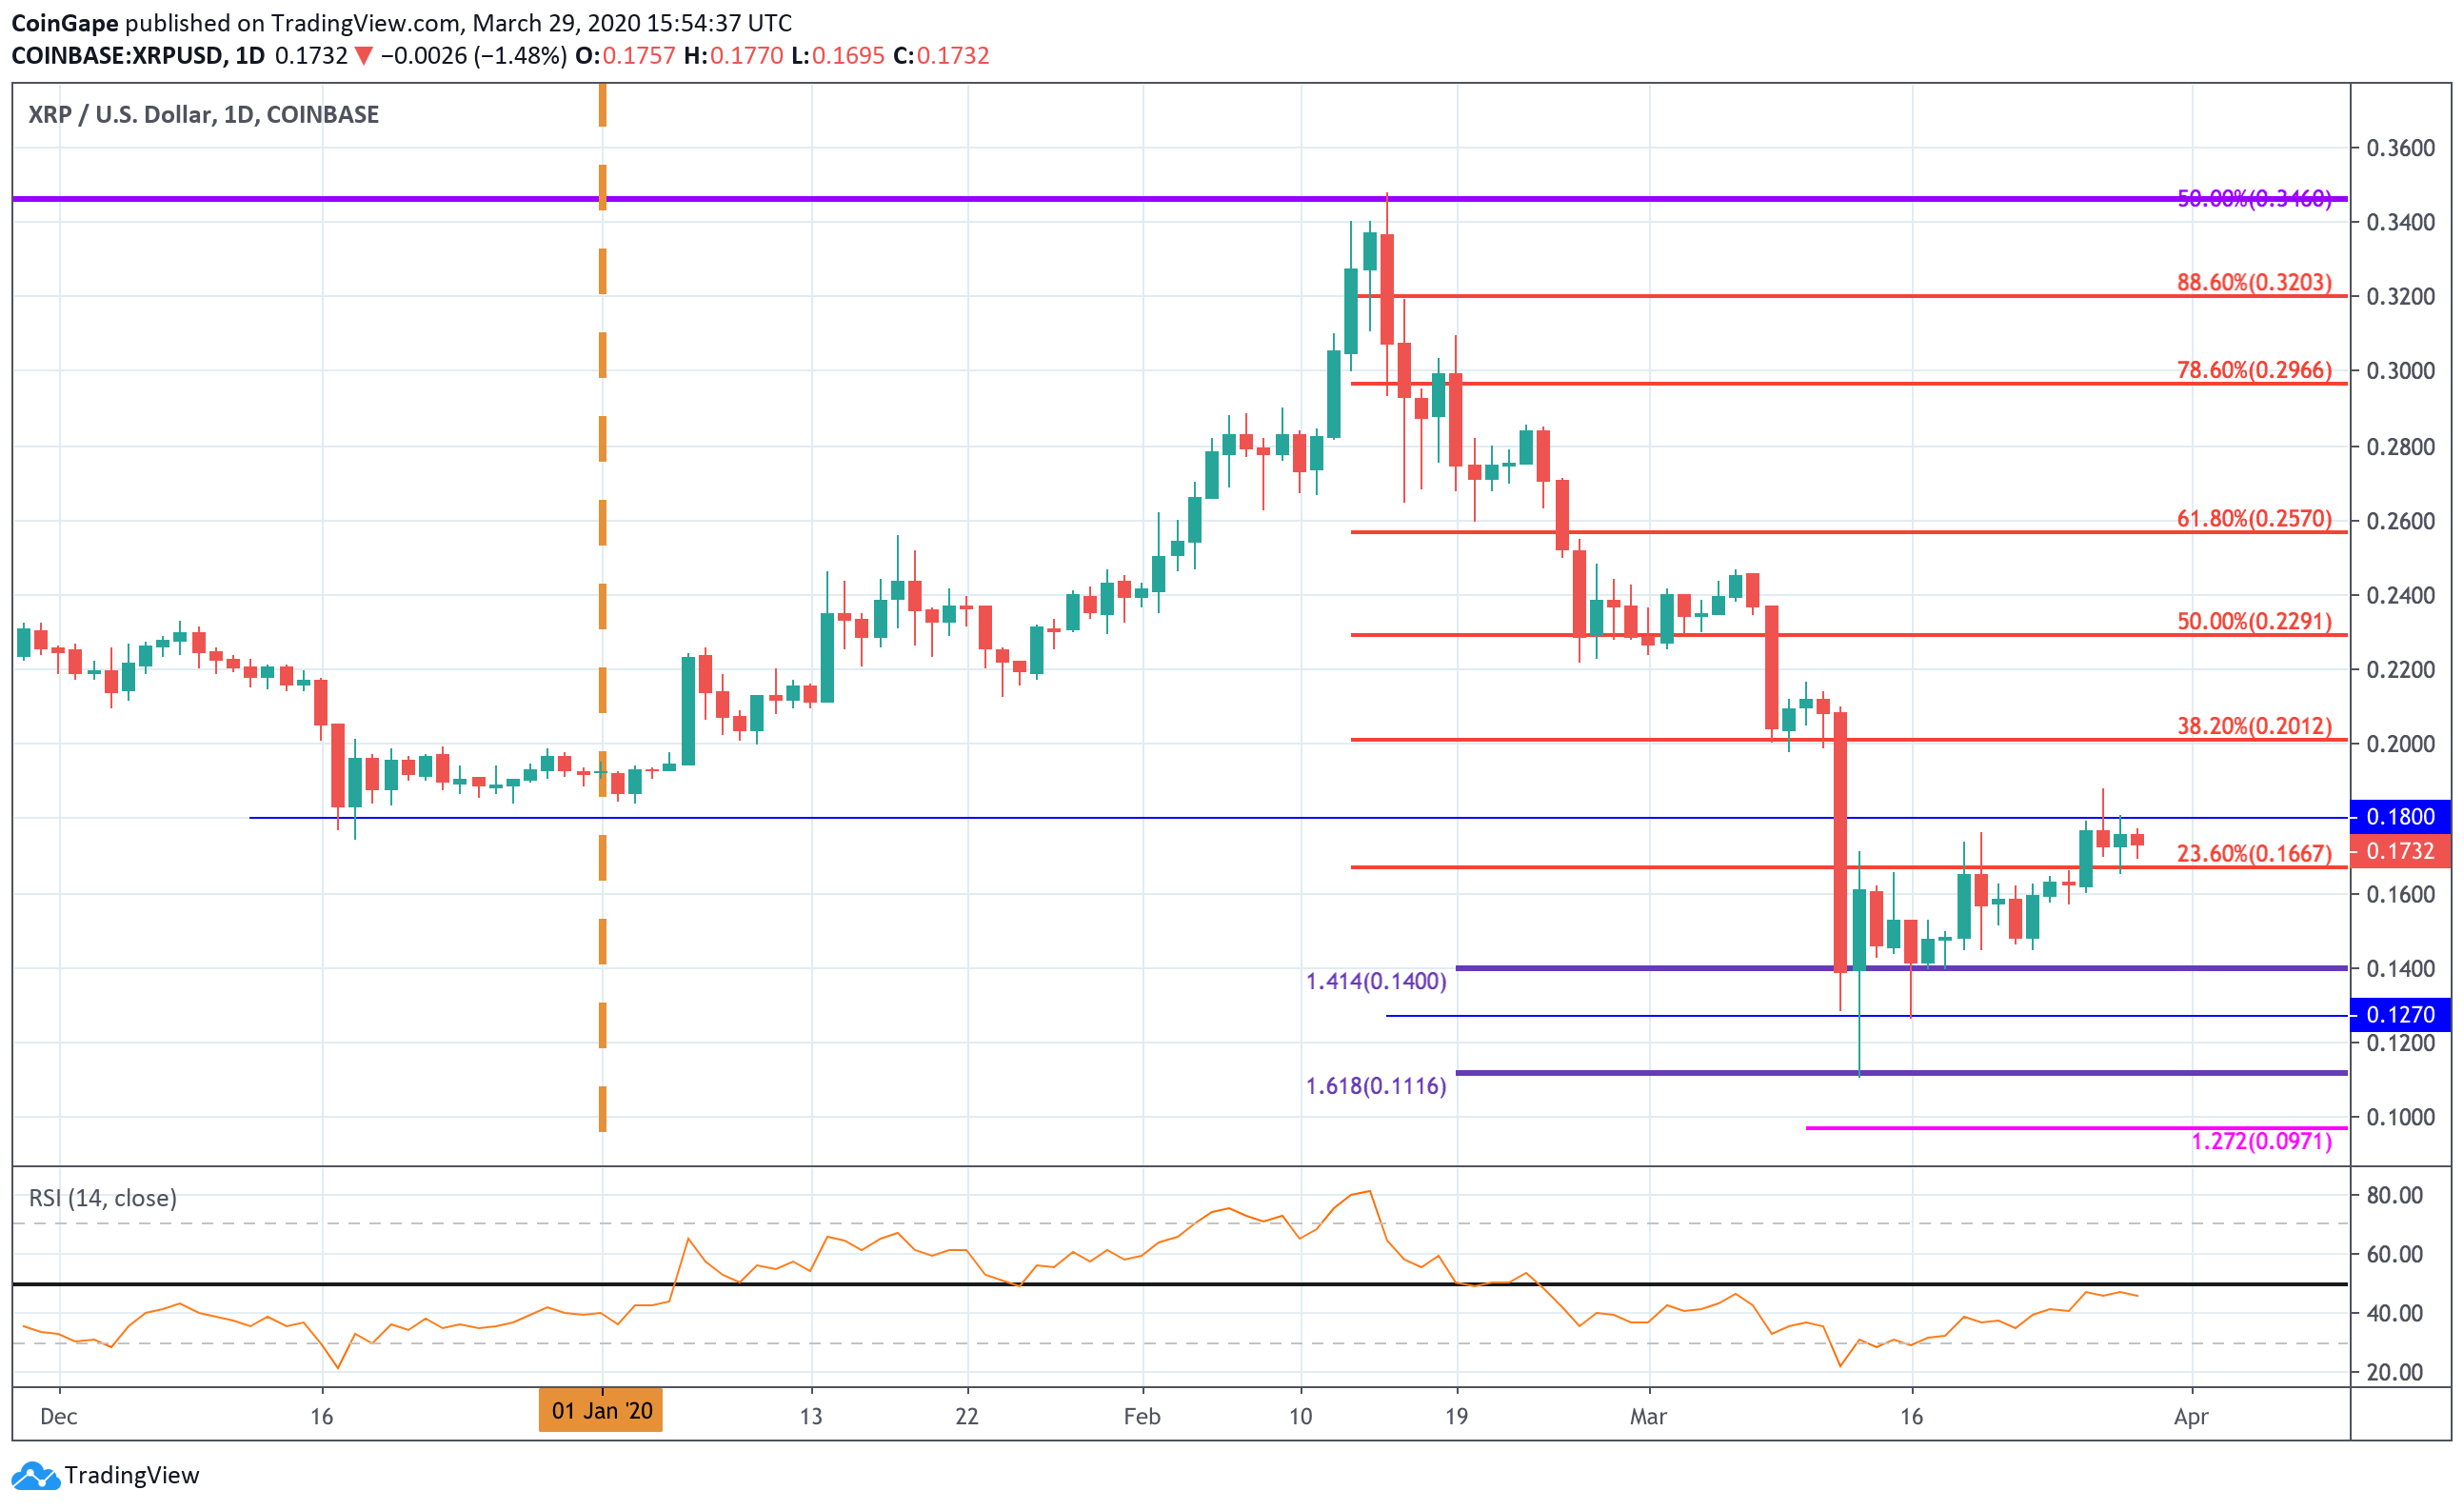 XRP Sees Small Price Increase But Is It In Danger Of Dropping?